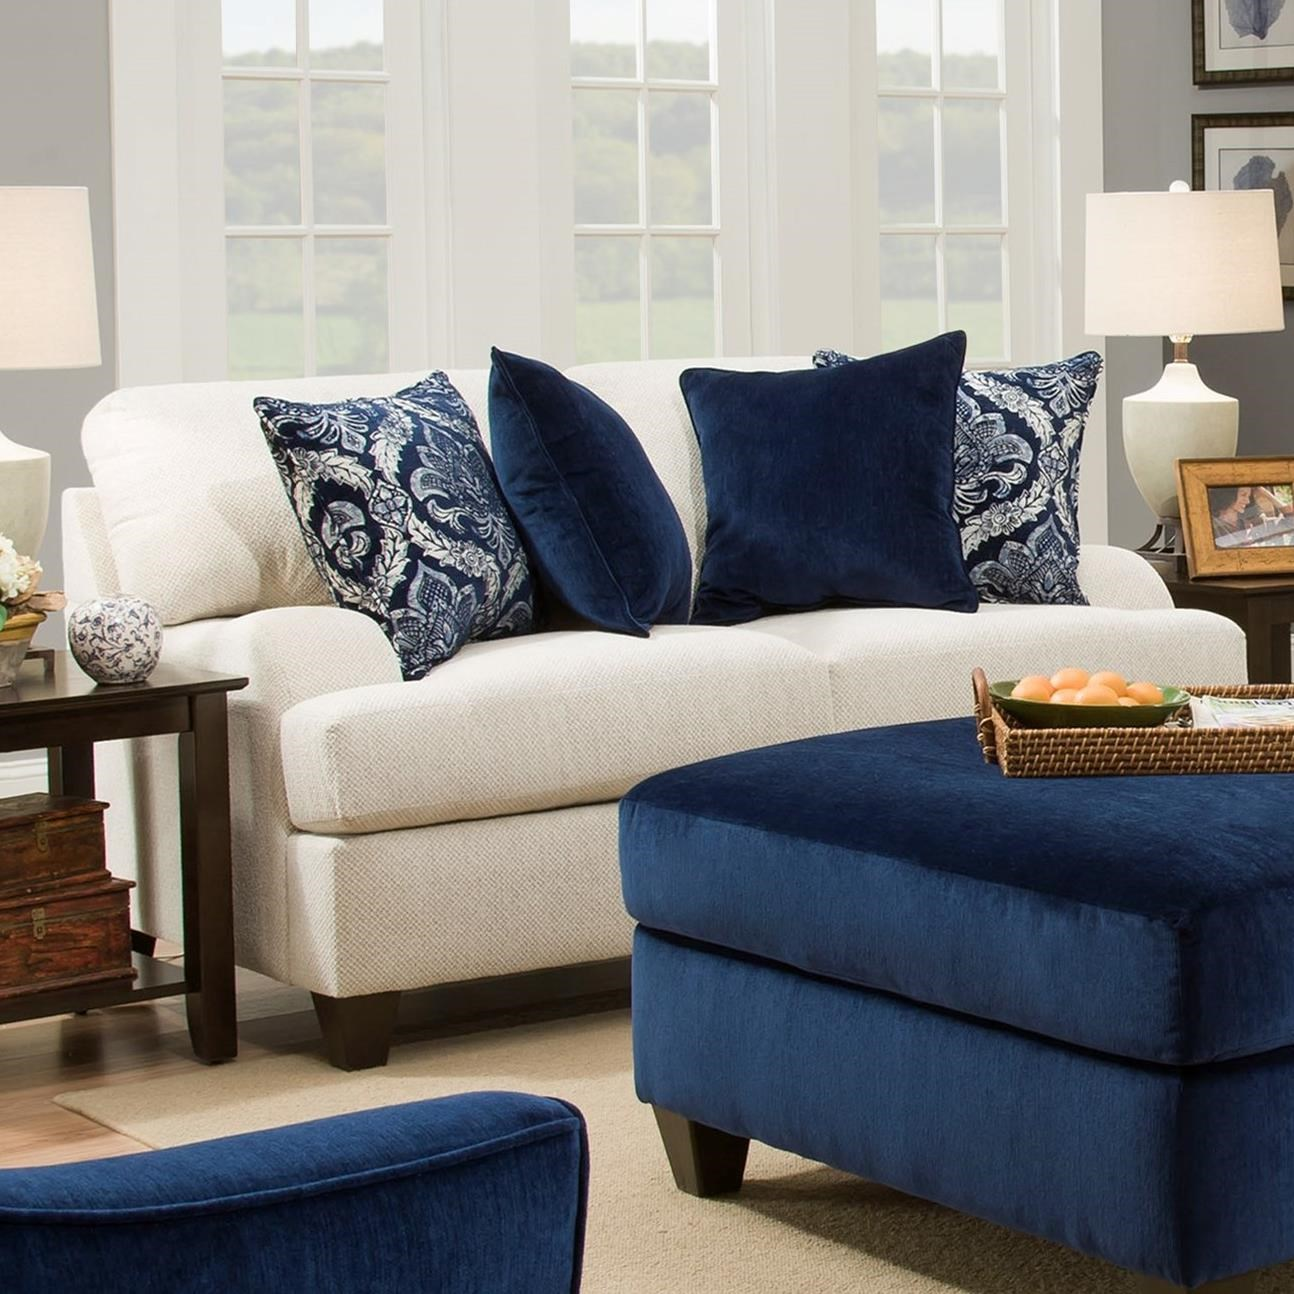 4002 Loveseat by United Furniture Industries at Dream Home Interiors